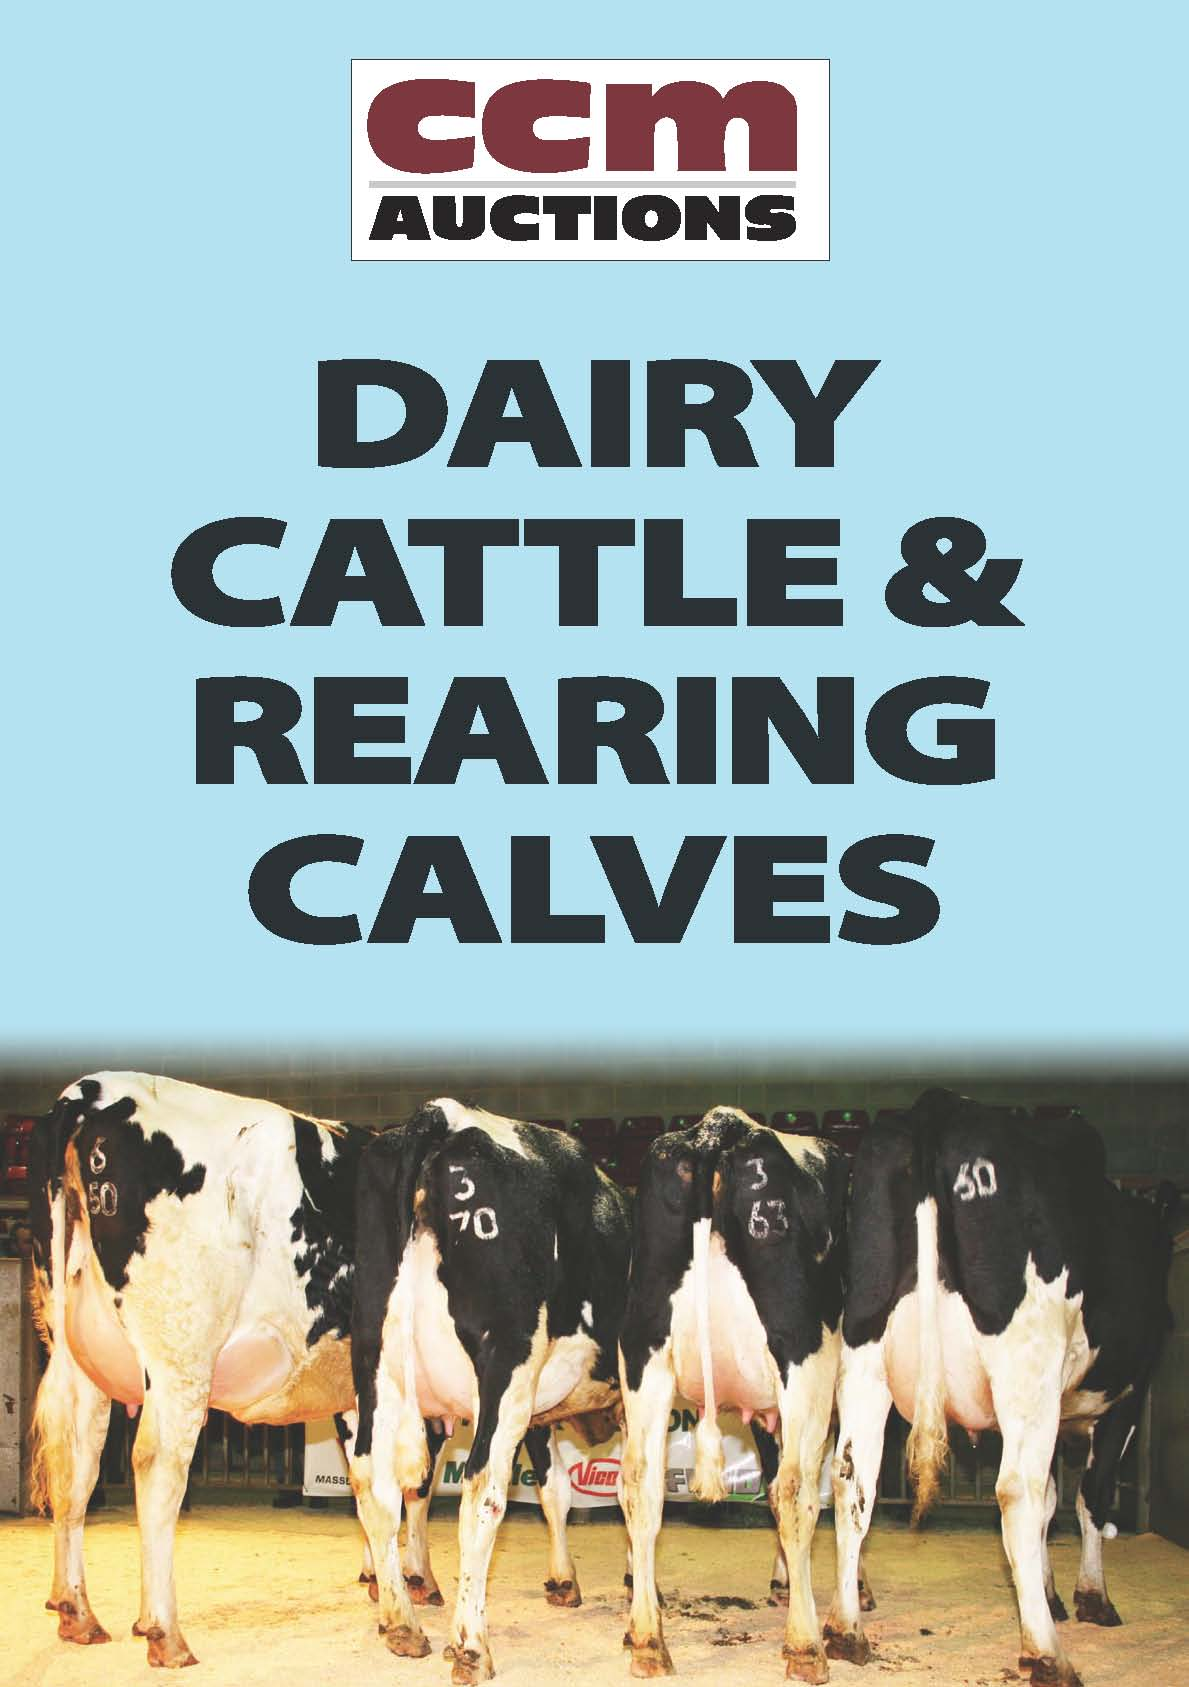 CRAVEN DAIRY PRESS - MONDAY 27TH MAY 2019